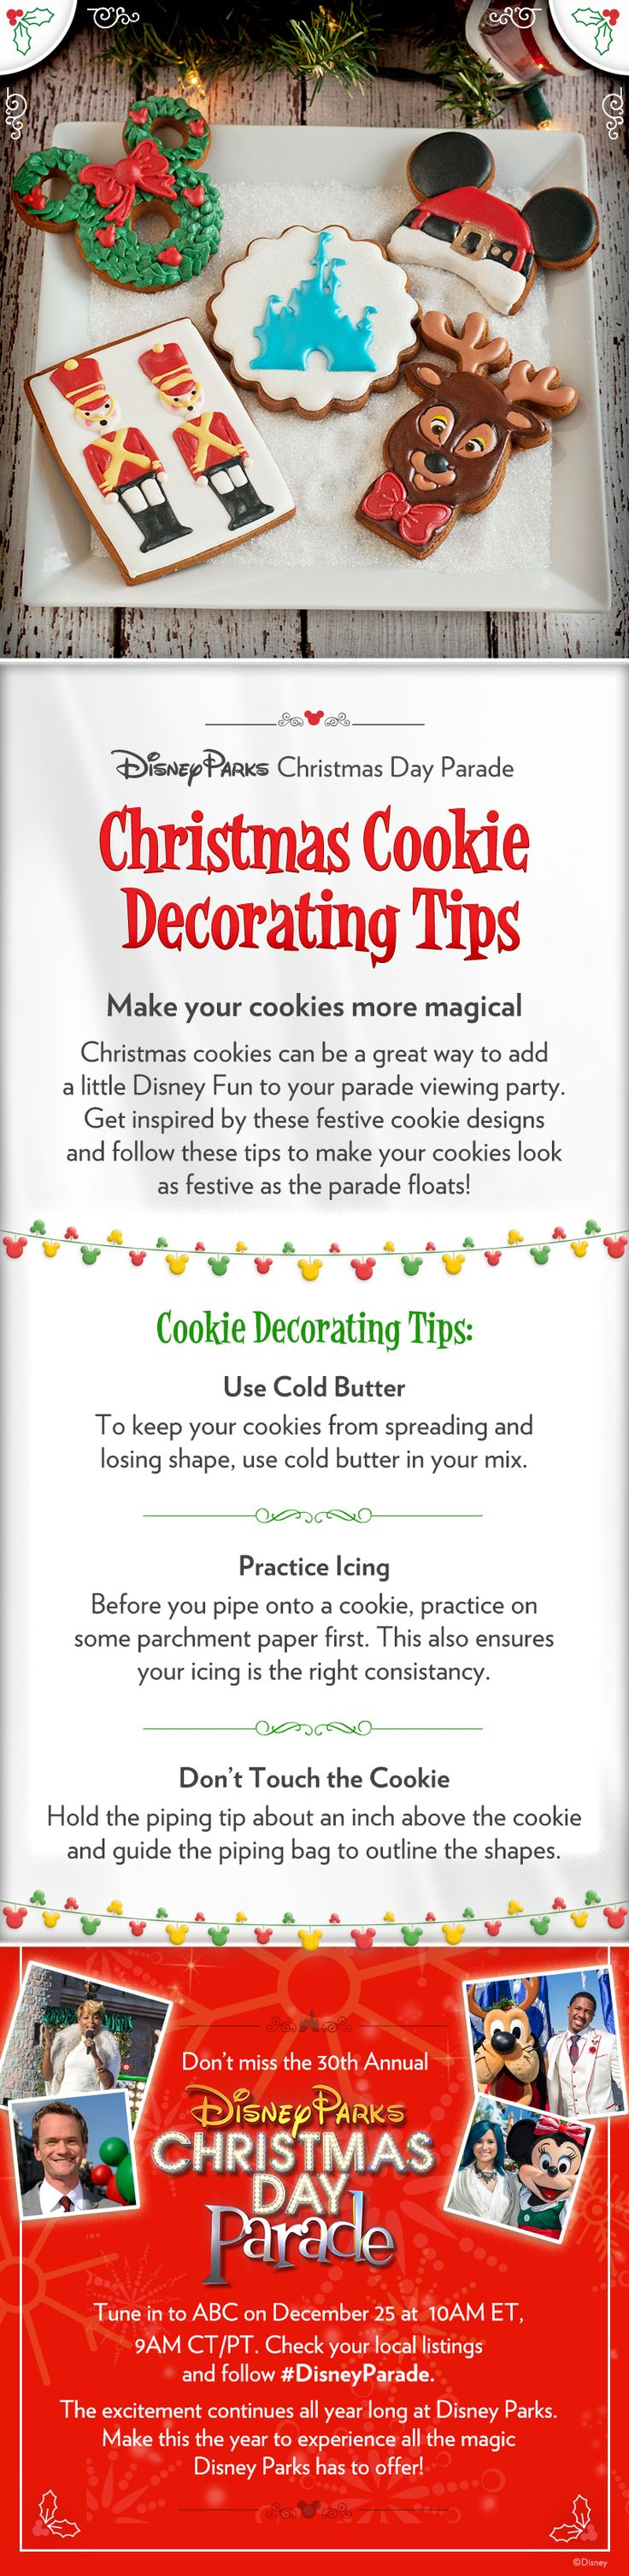 Make your Christmas cookies more magical with these decorating tips! #DisneyParade